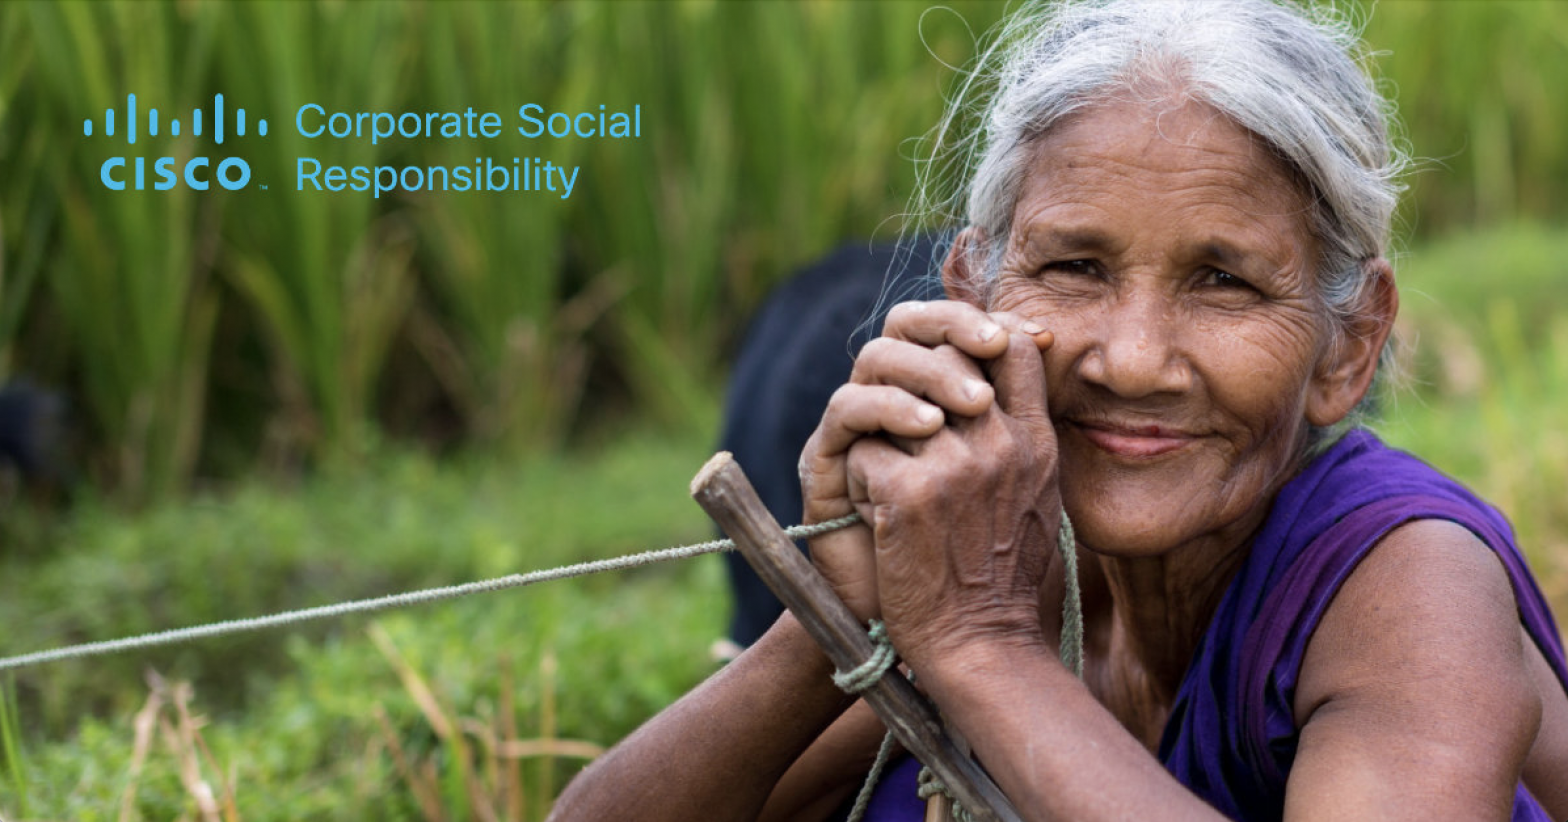 CISCO AGRI CHALLENGE: Solutions for the Indian Farmer